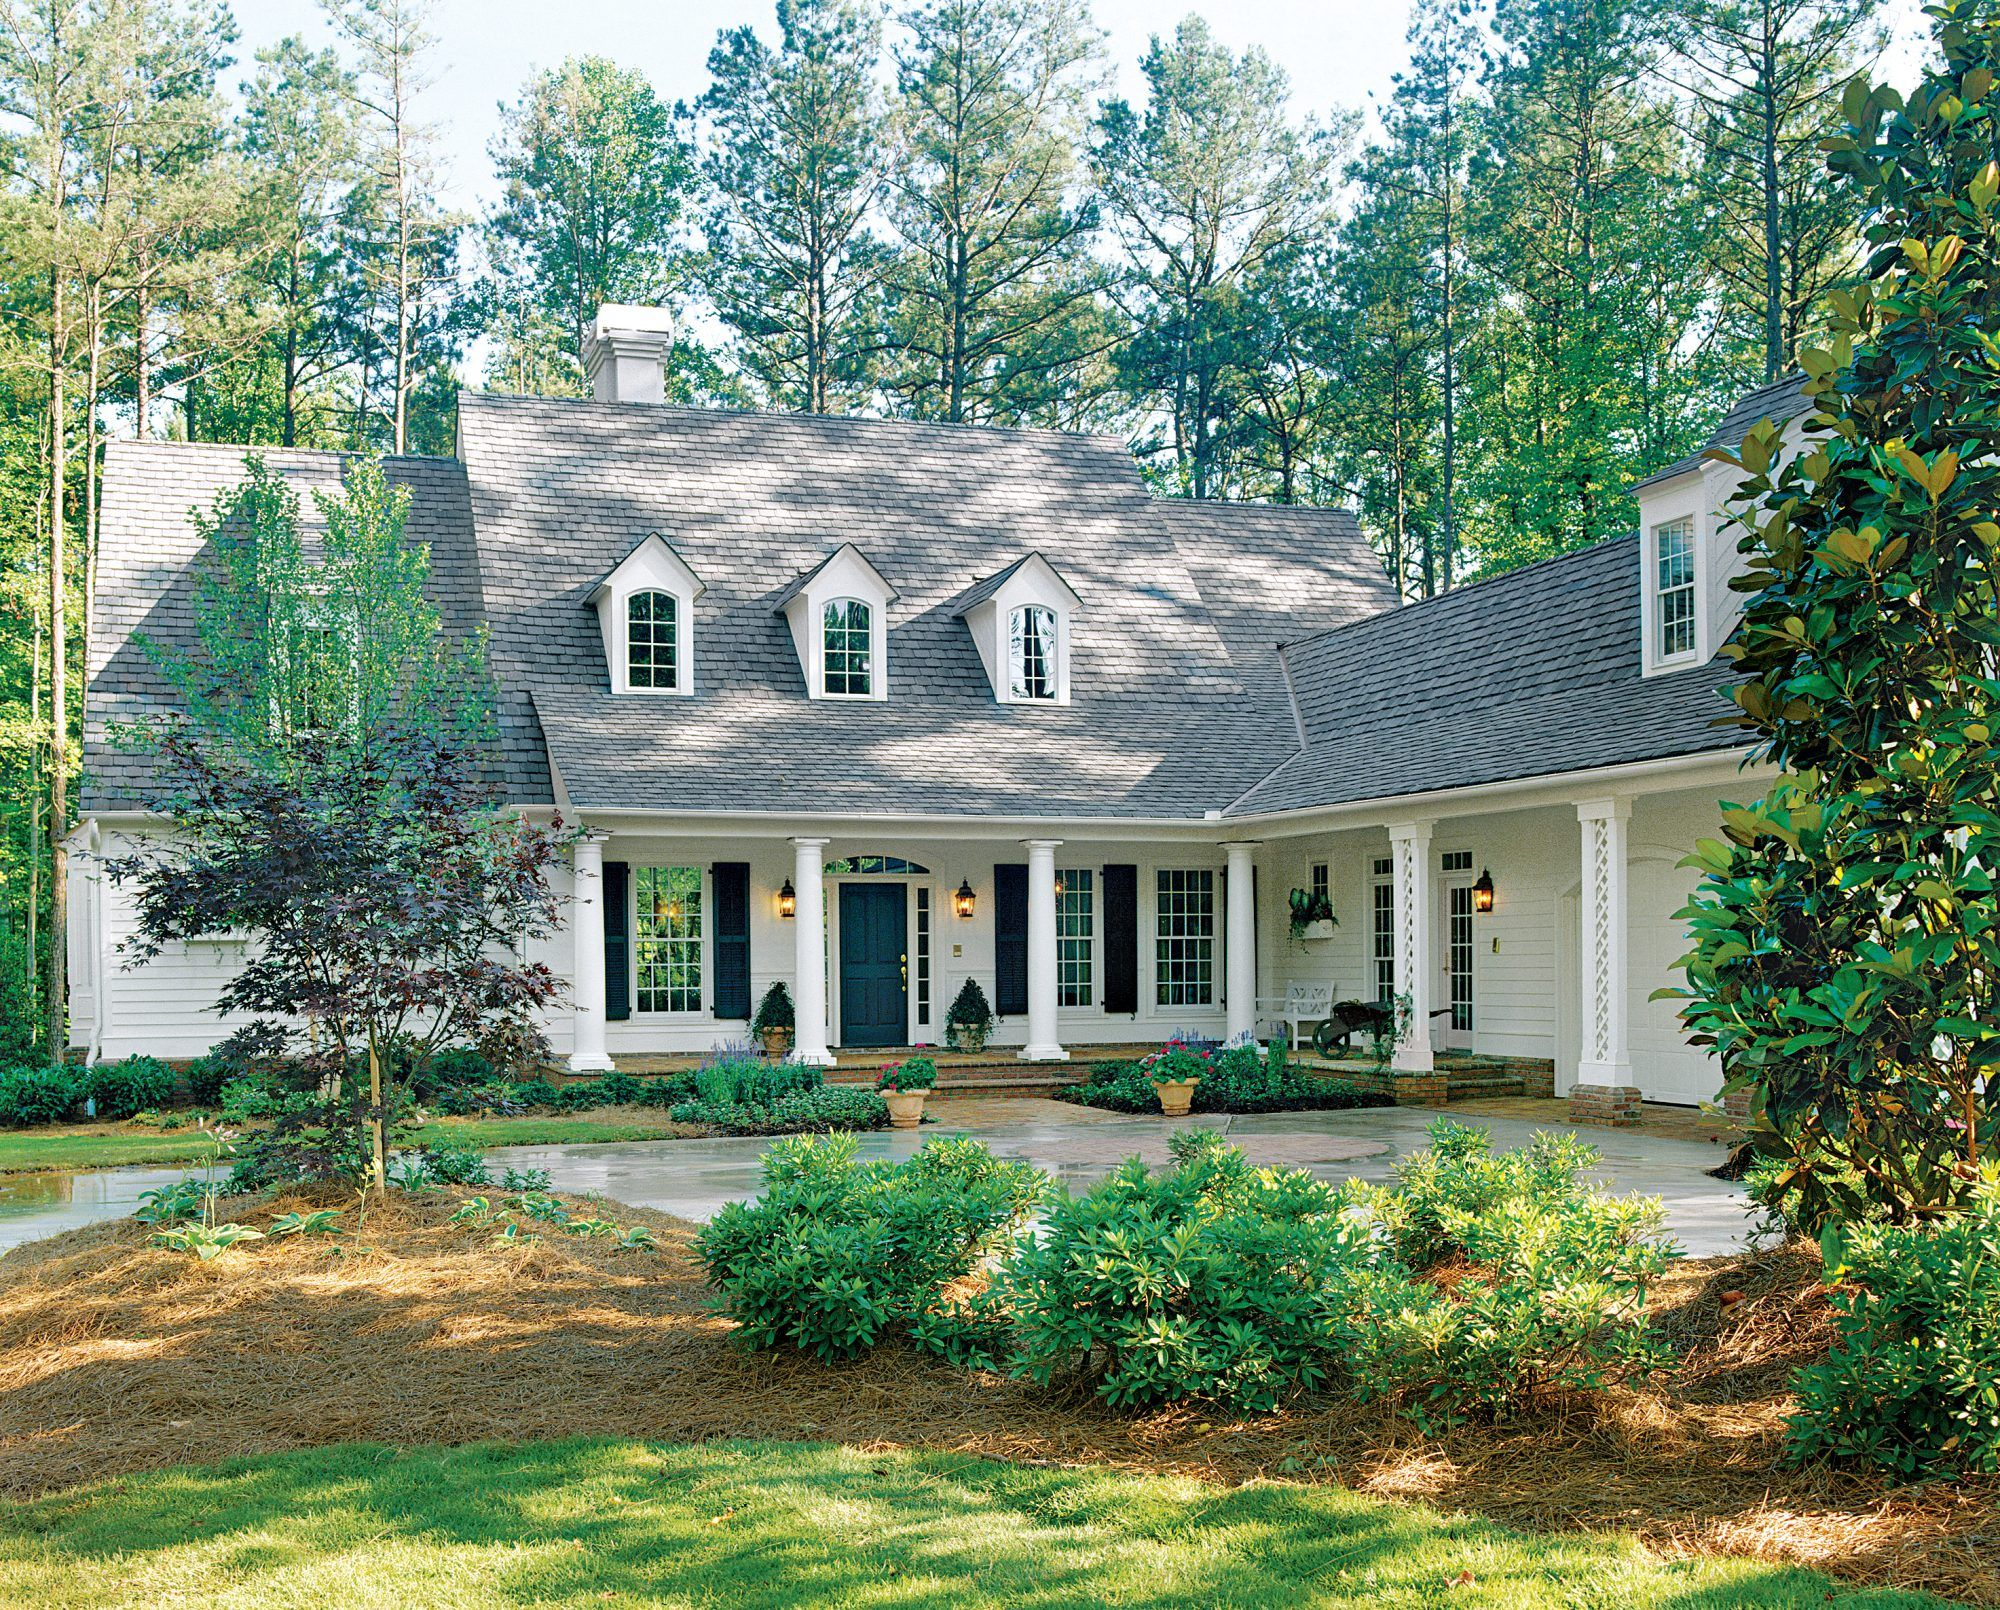 Wide Porches Thoughtful Layouts And Southern Details You Ll Love Southern Living House Plans Southern House Plans House Exterior